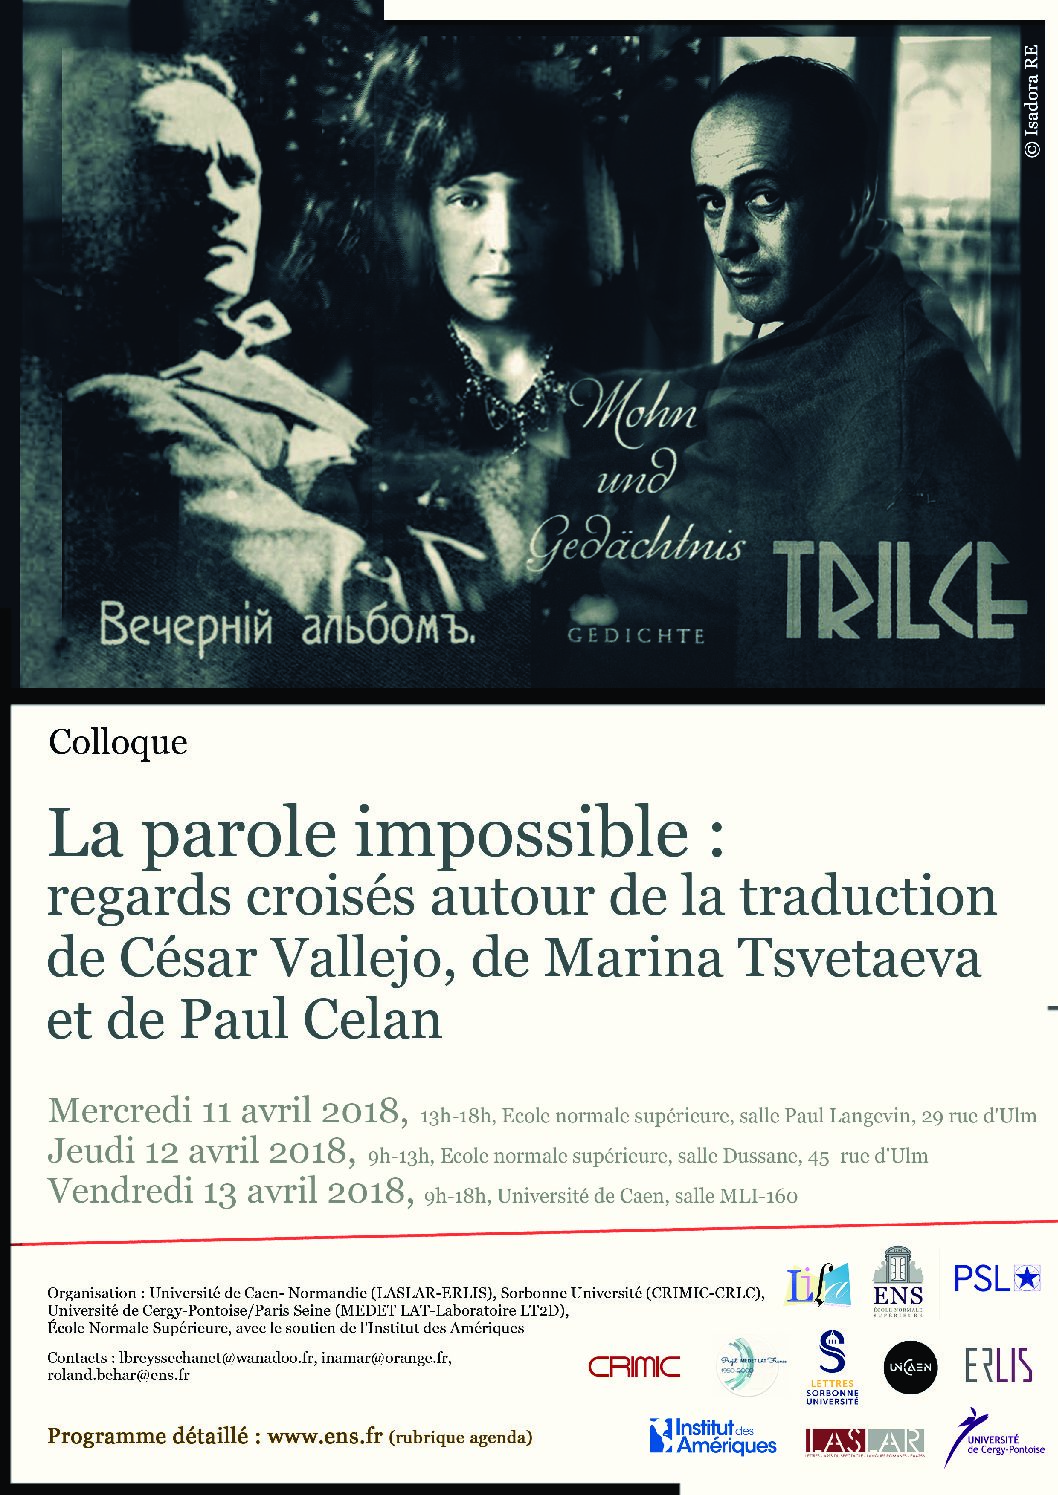 La parole impossible : regards croisés autour de la traduction de César Vallejo, de Marina Tsvetaeva et de Paul Celan